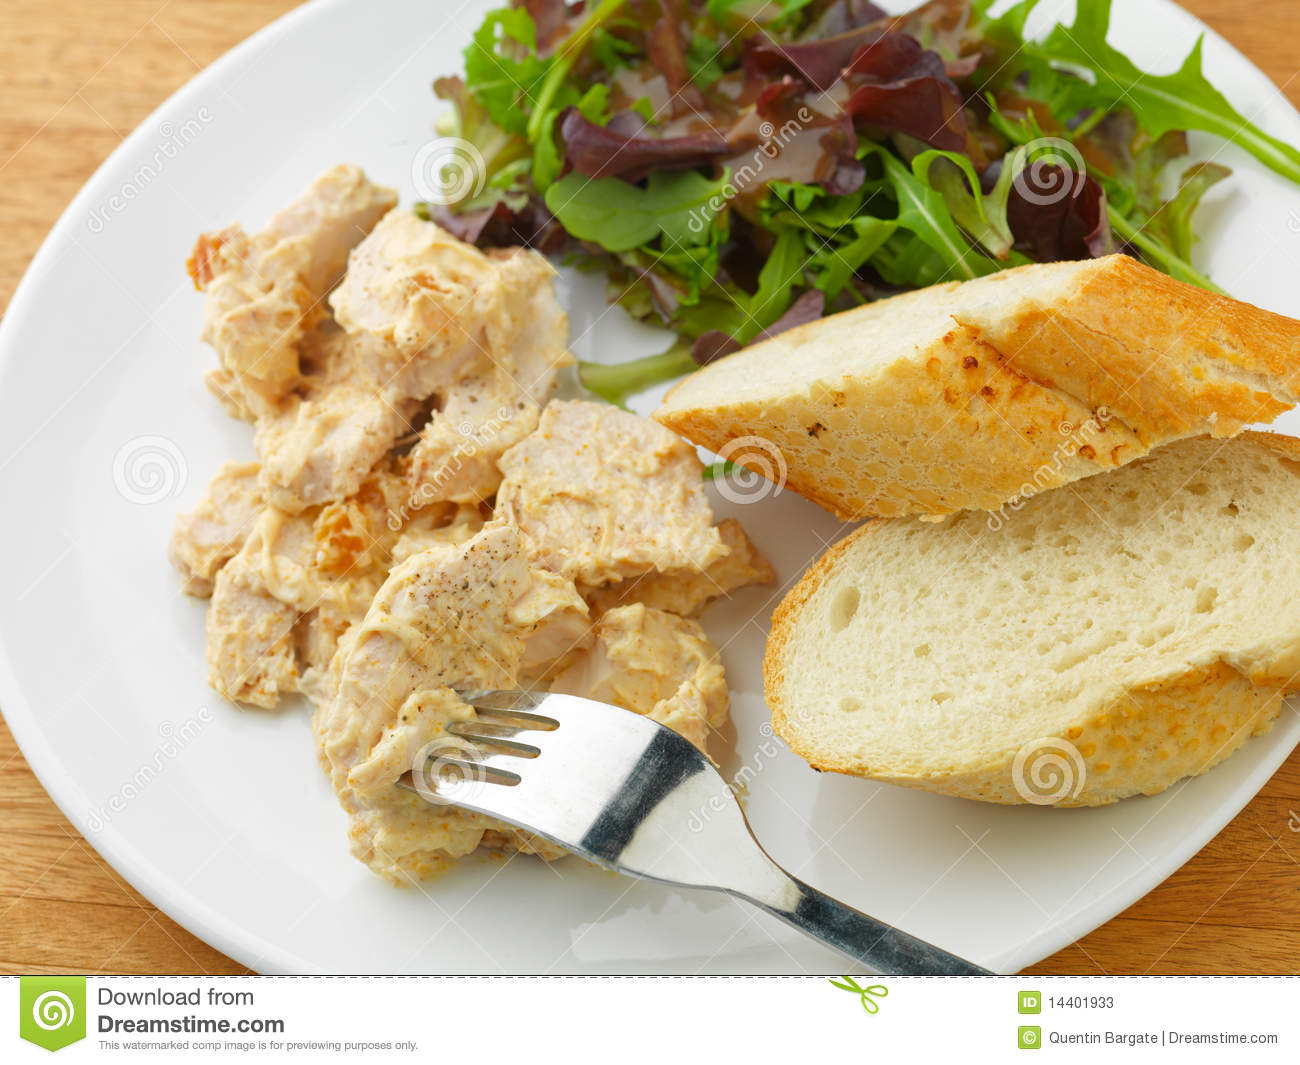 Coronation Chicken With Salad And Bread Stock Photos - Image: 14401933